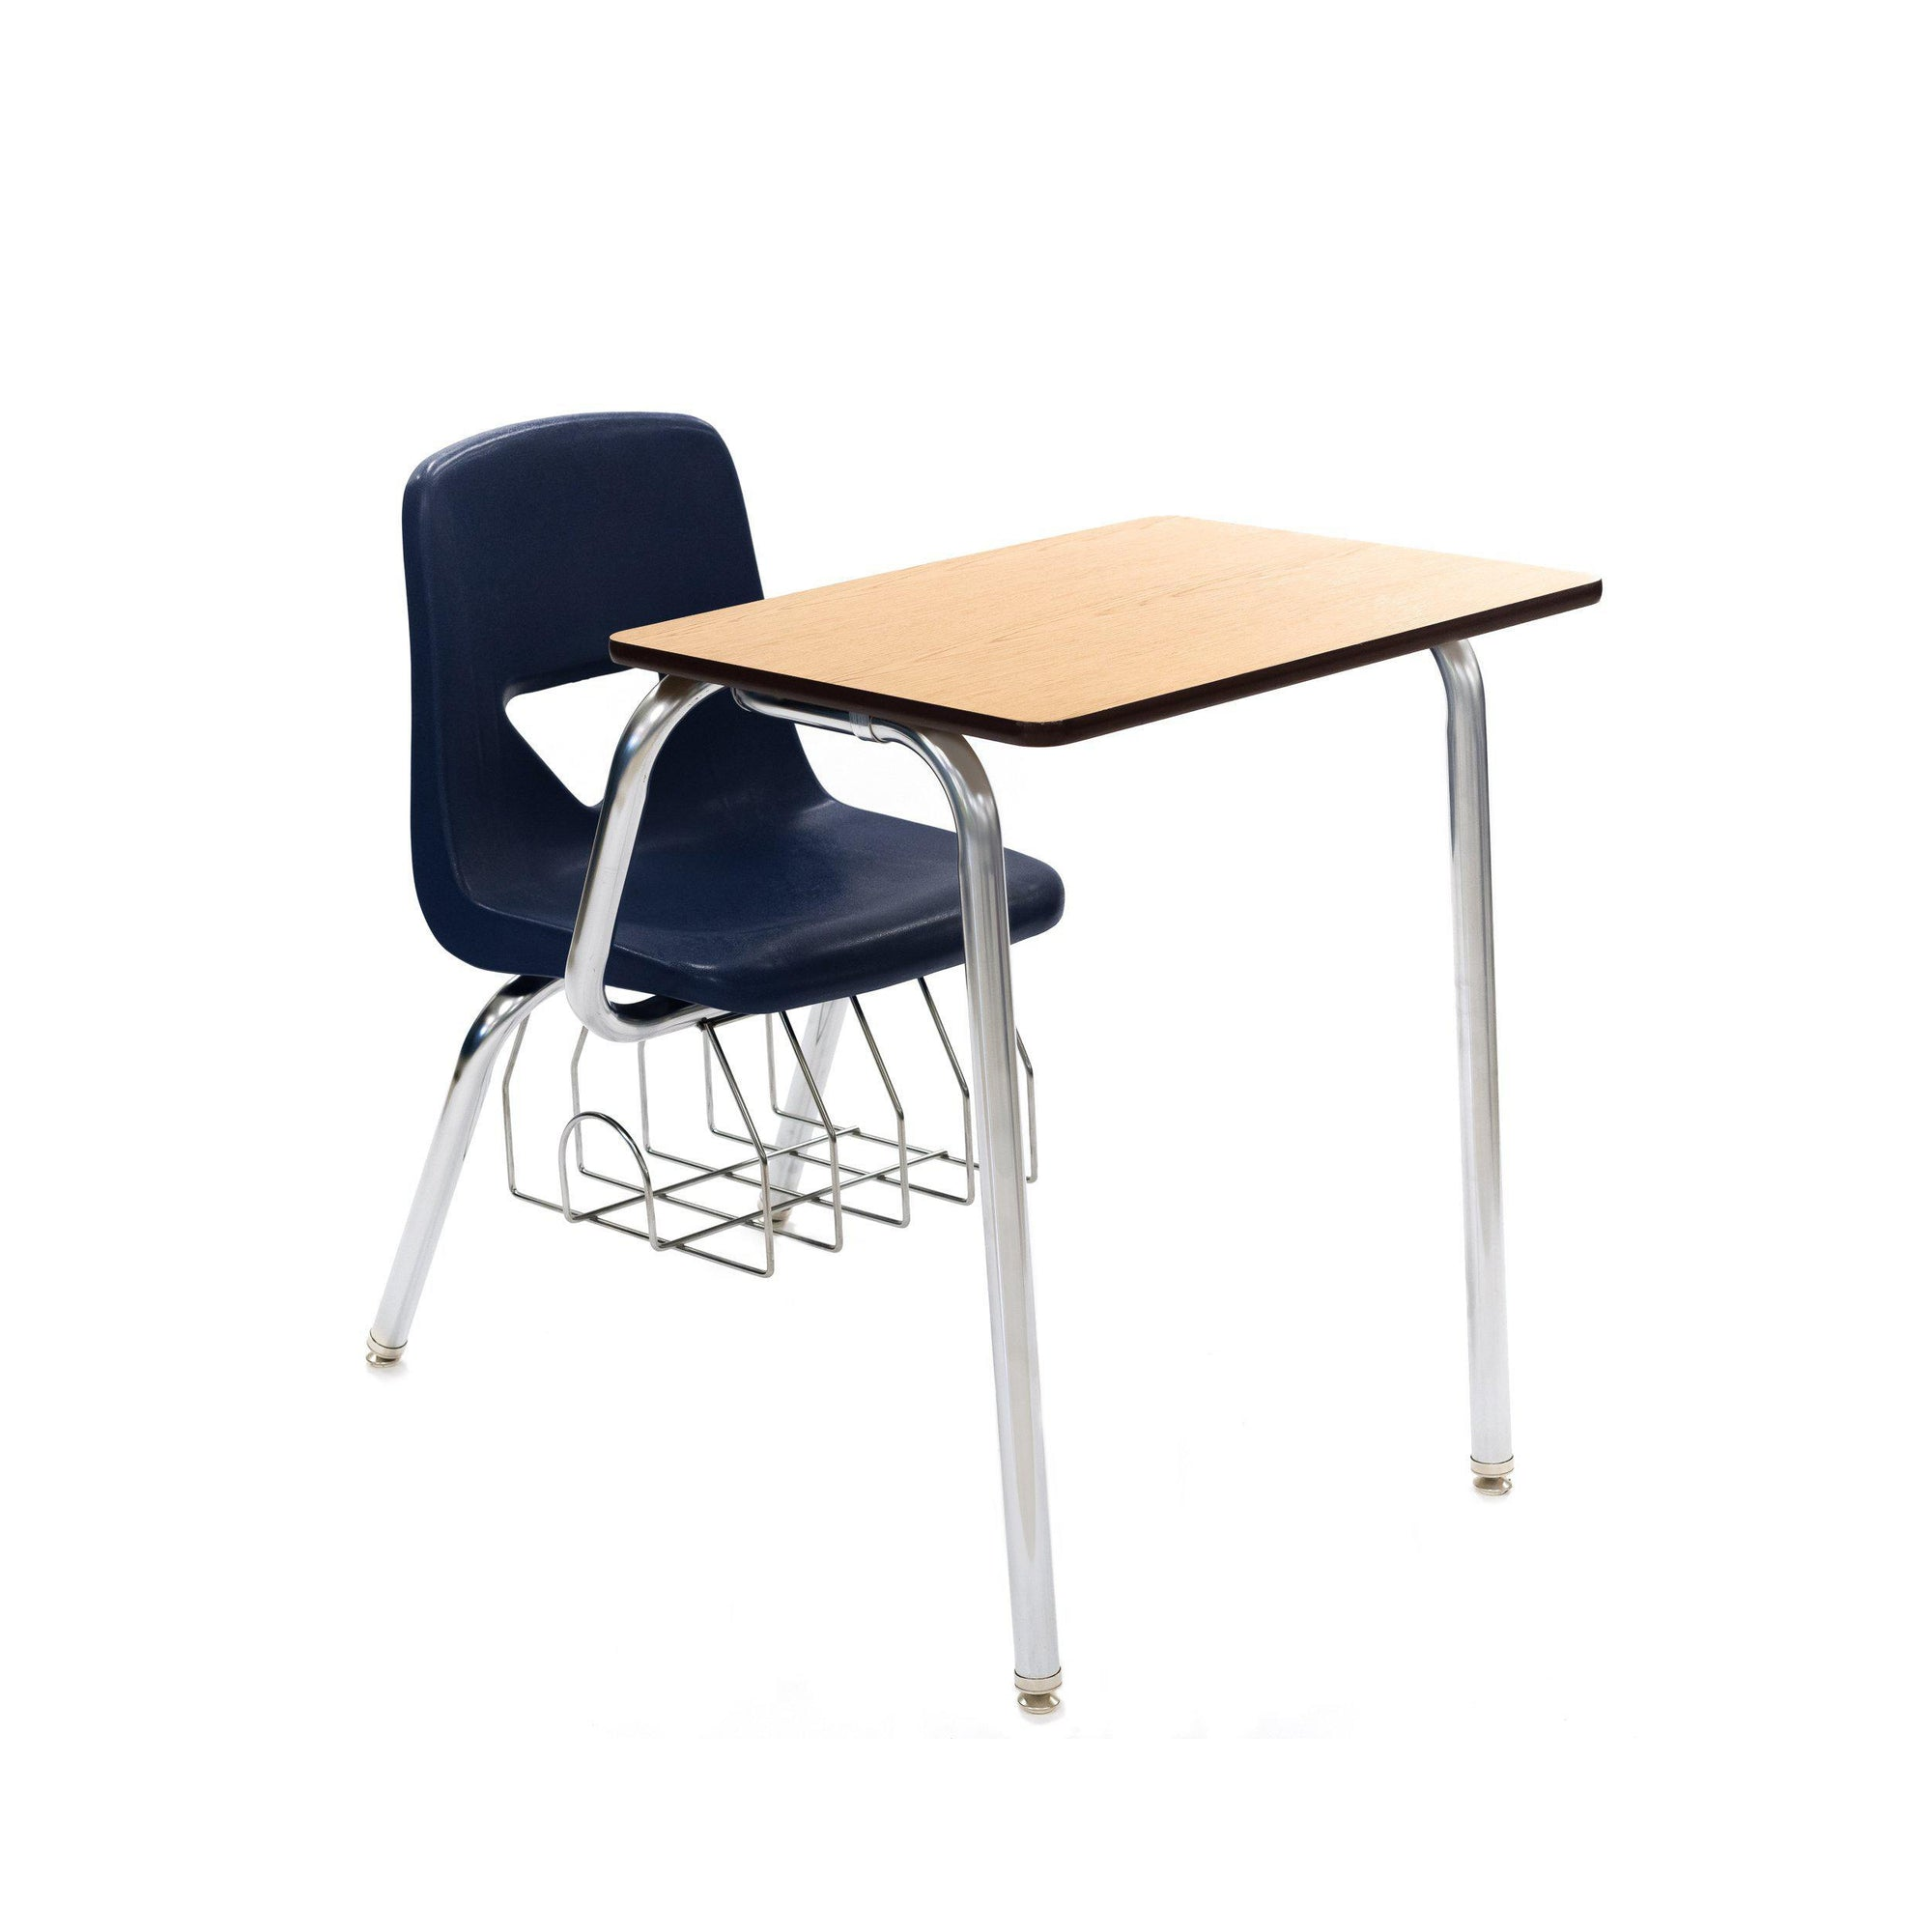 620 Series Combo Desk, Navy Seat, Oak Top